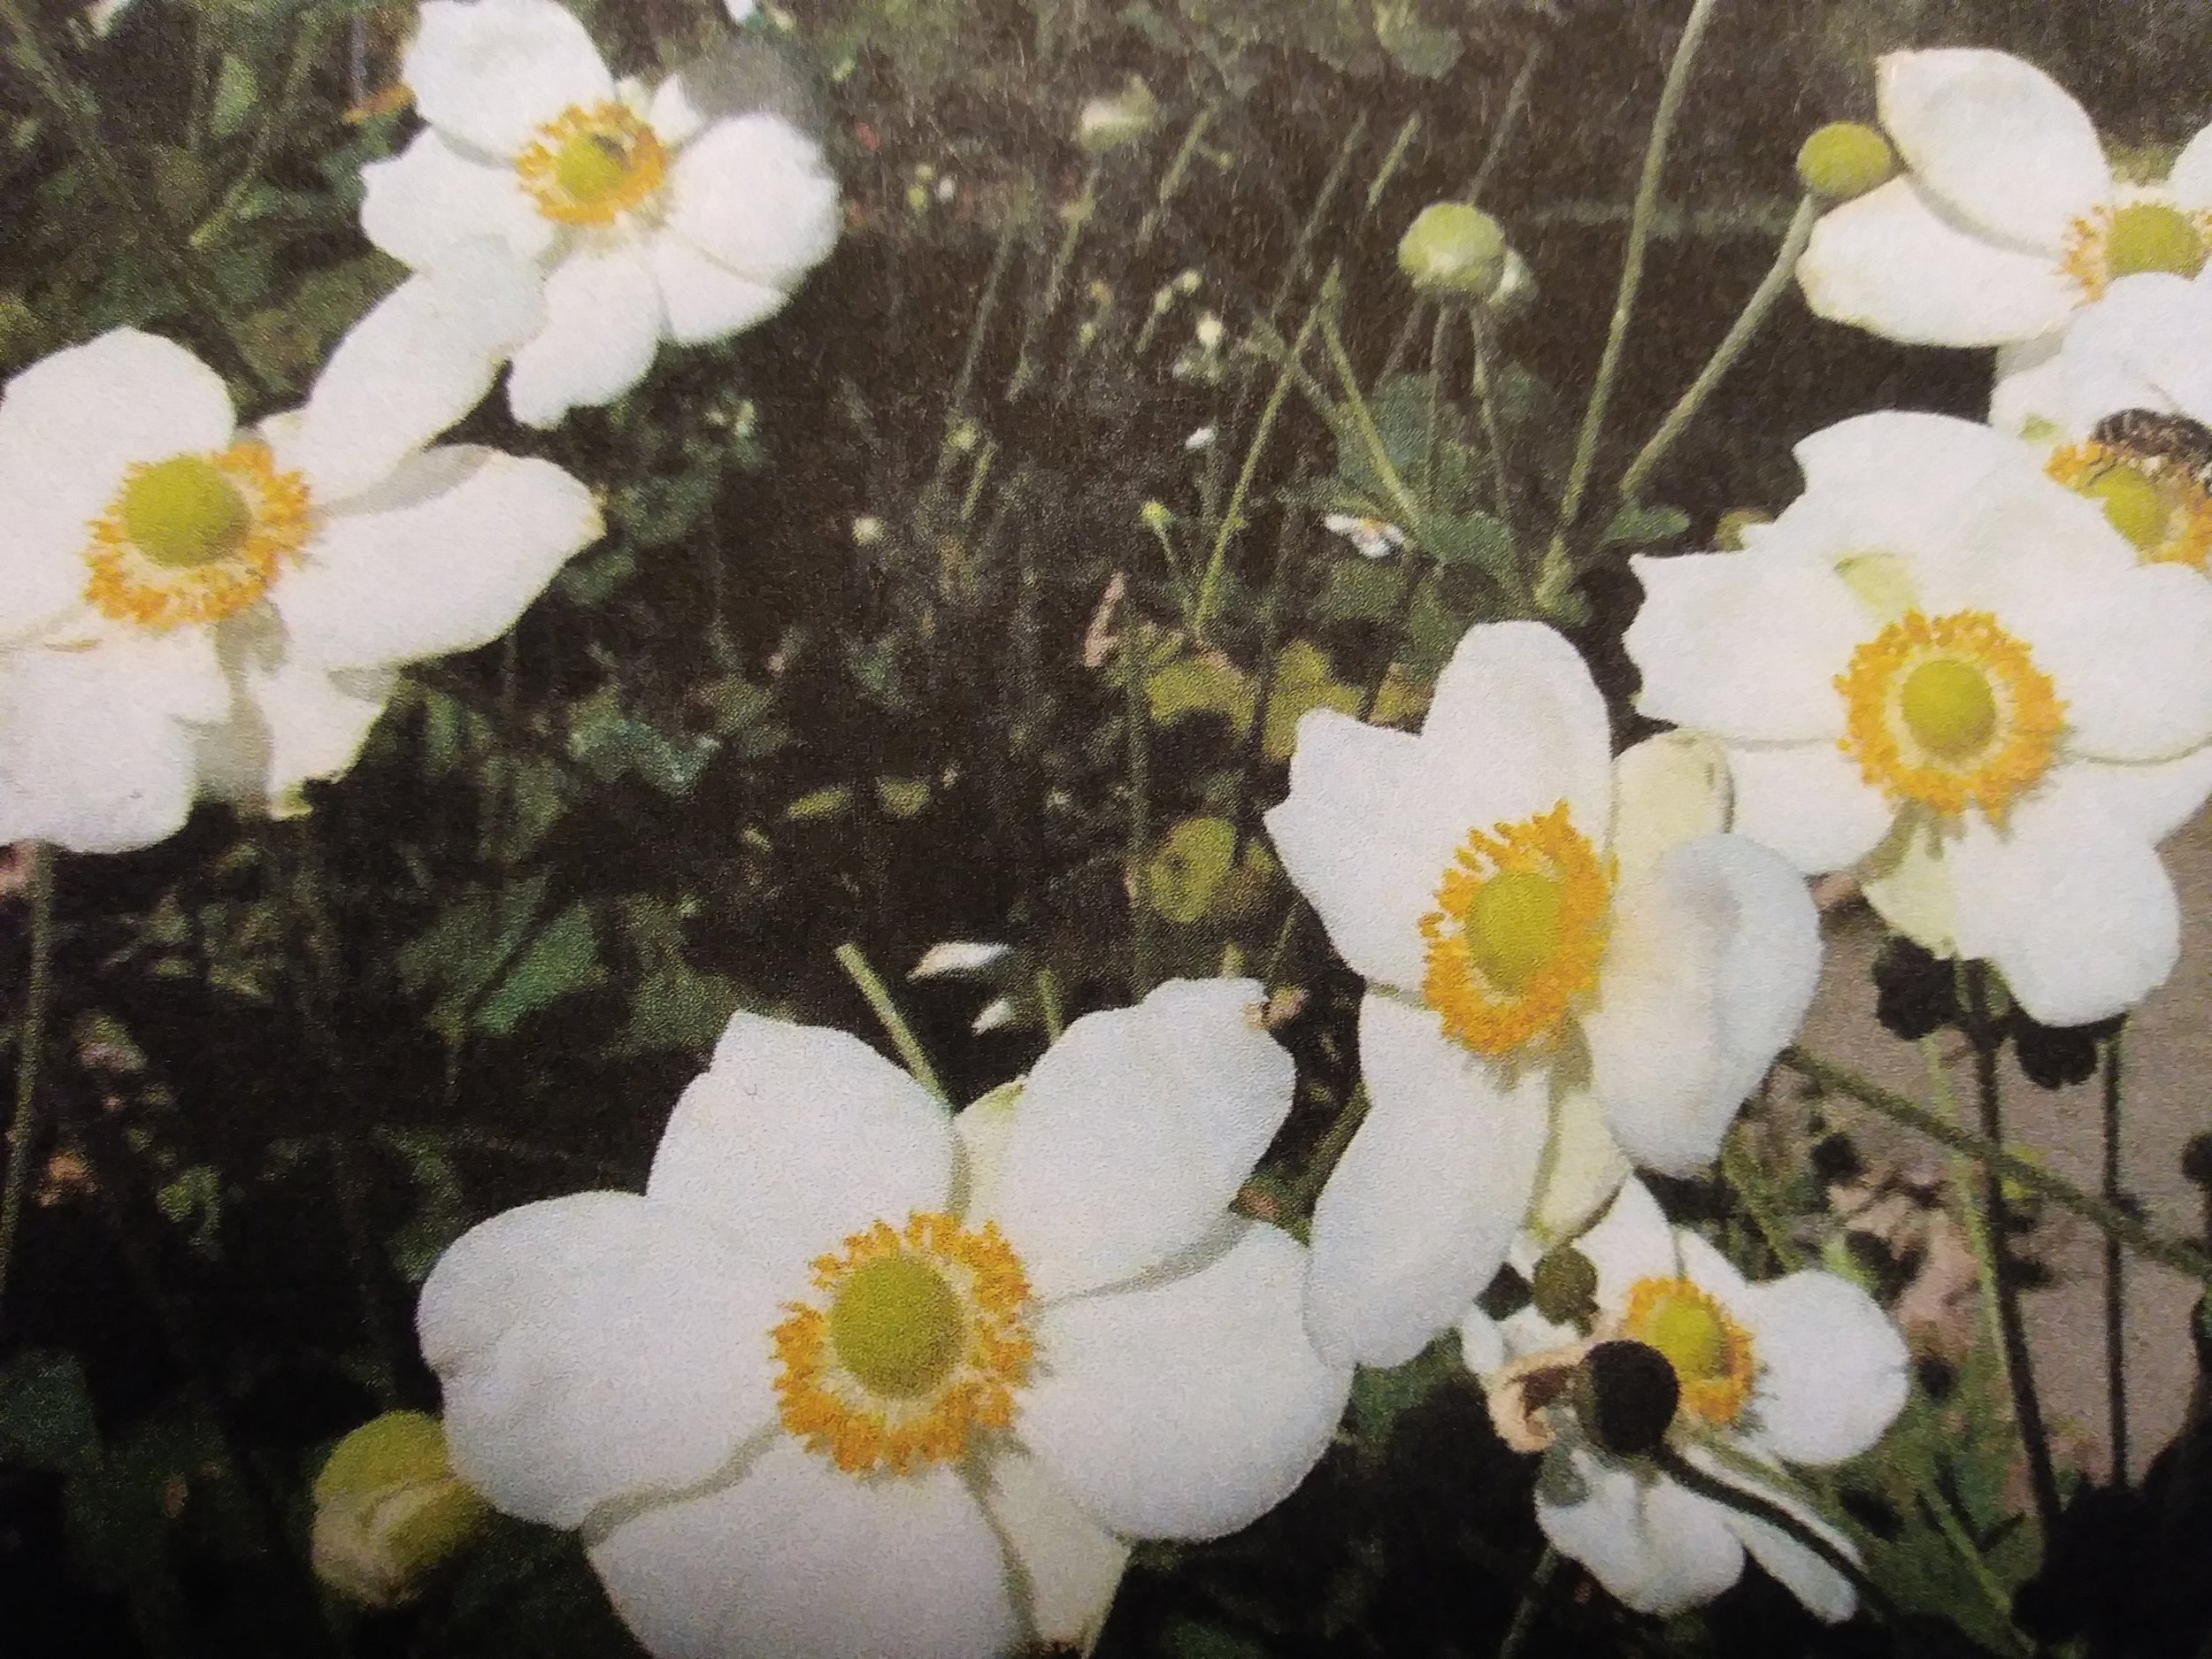 #4-Make your garden beautiful all year round. - Walk through your garden and see what you have already and make a note of when it blooms. Then, for each area of your garden make sure you have plants that will bloom or provide interest throughout the year. For example, Japanese anemones are beautiful in the fall they are a little lackluster in the spring, but by combining them with a planting of Persicaria Red dragon, you can match the dramatic structure of the plant and have visual interest in early spring and into summer when the anemones come on. Many early spring bulbs can be followed by late summer perennials